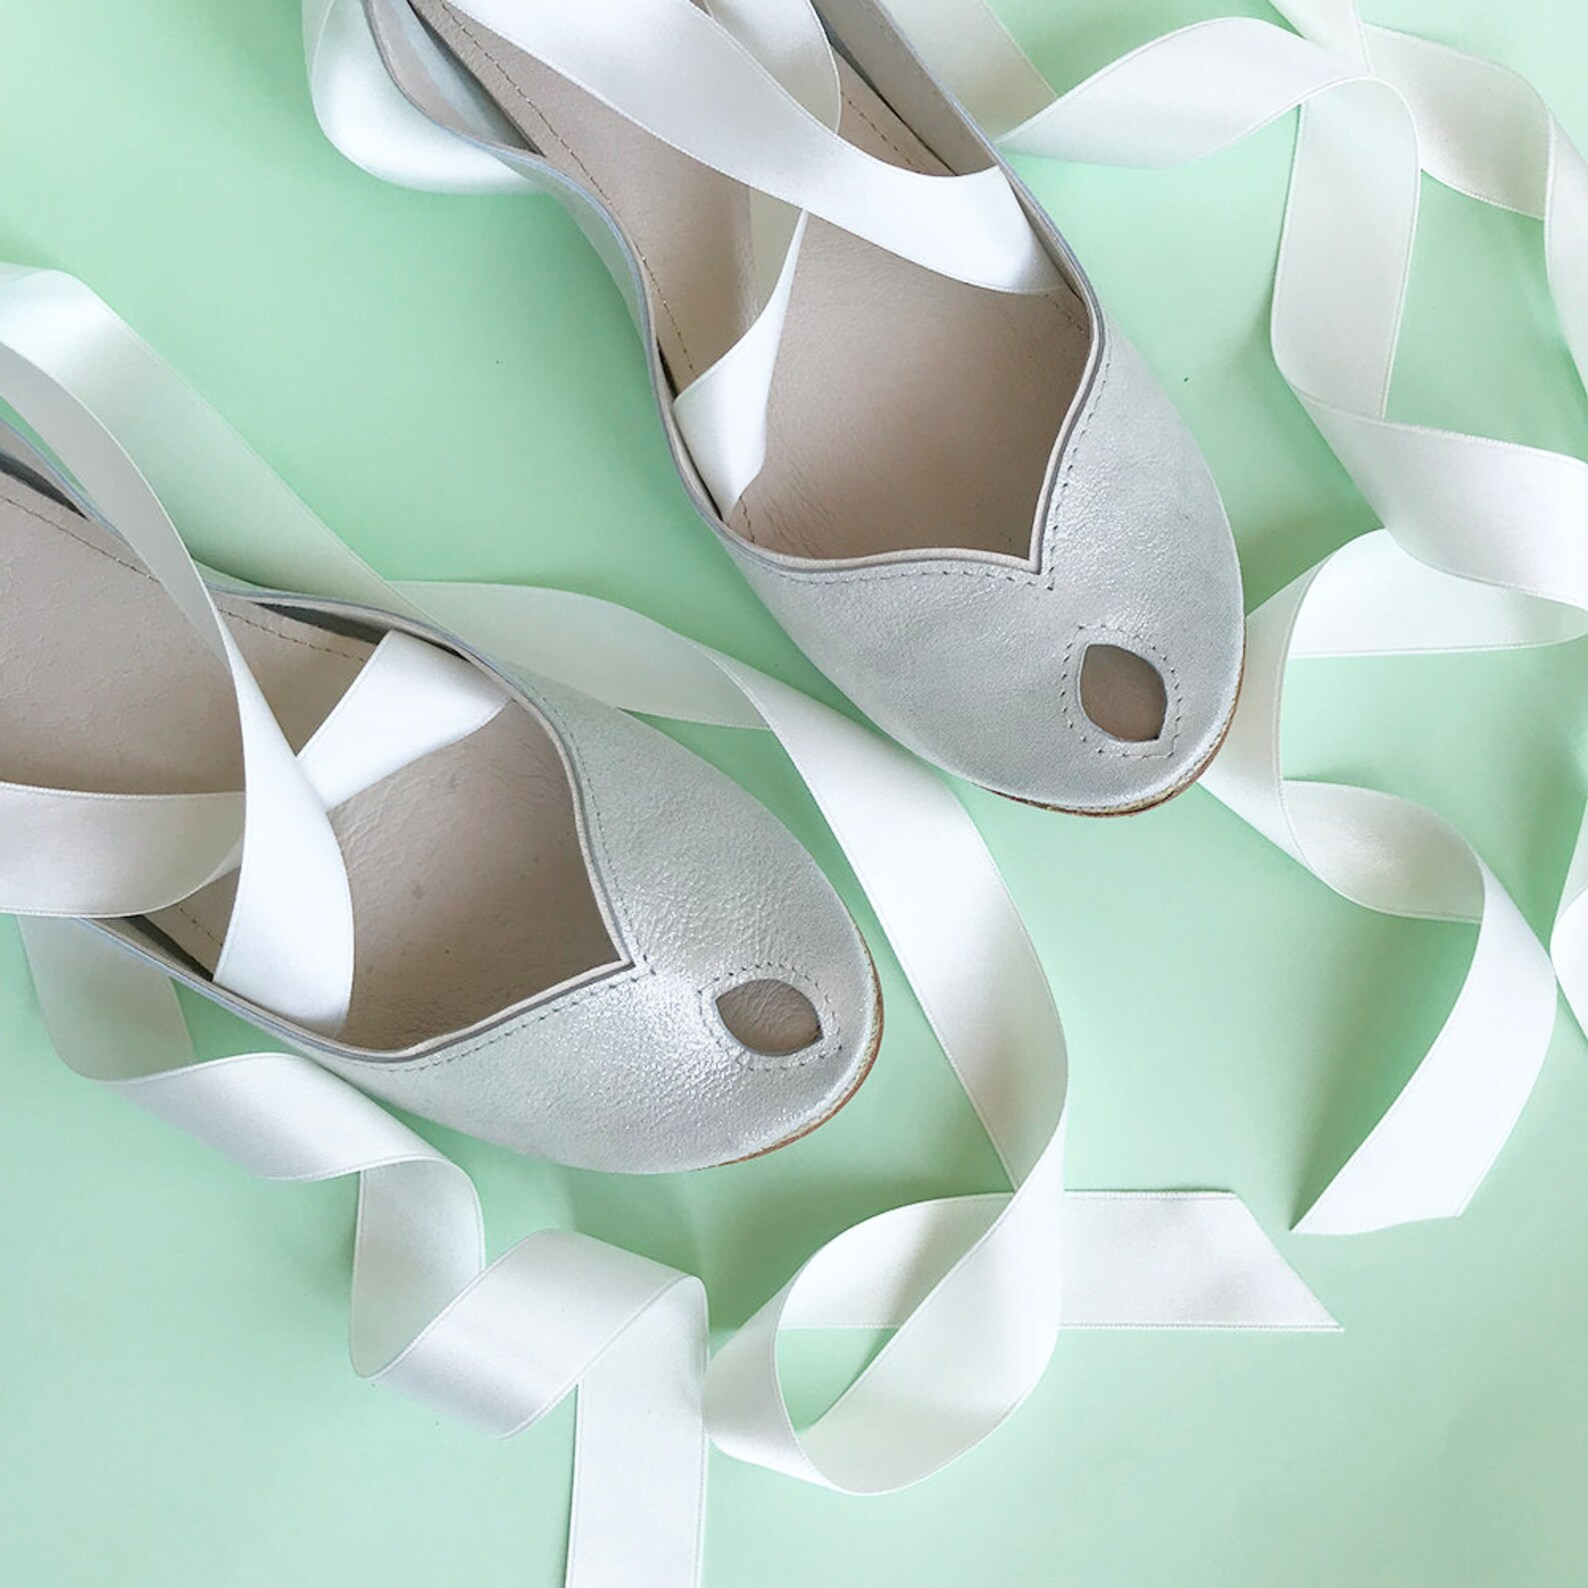 ballet flats with ribbons. wedding shoes flats. satin ribbon shoes. bridal shoes. bridal low heel shoes. peep toe flats. white g